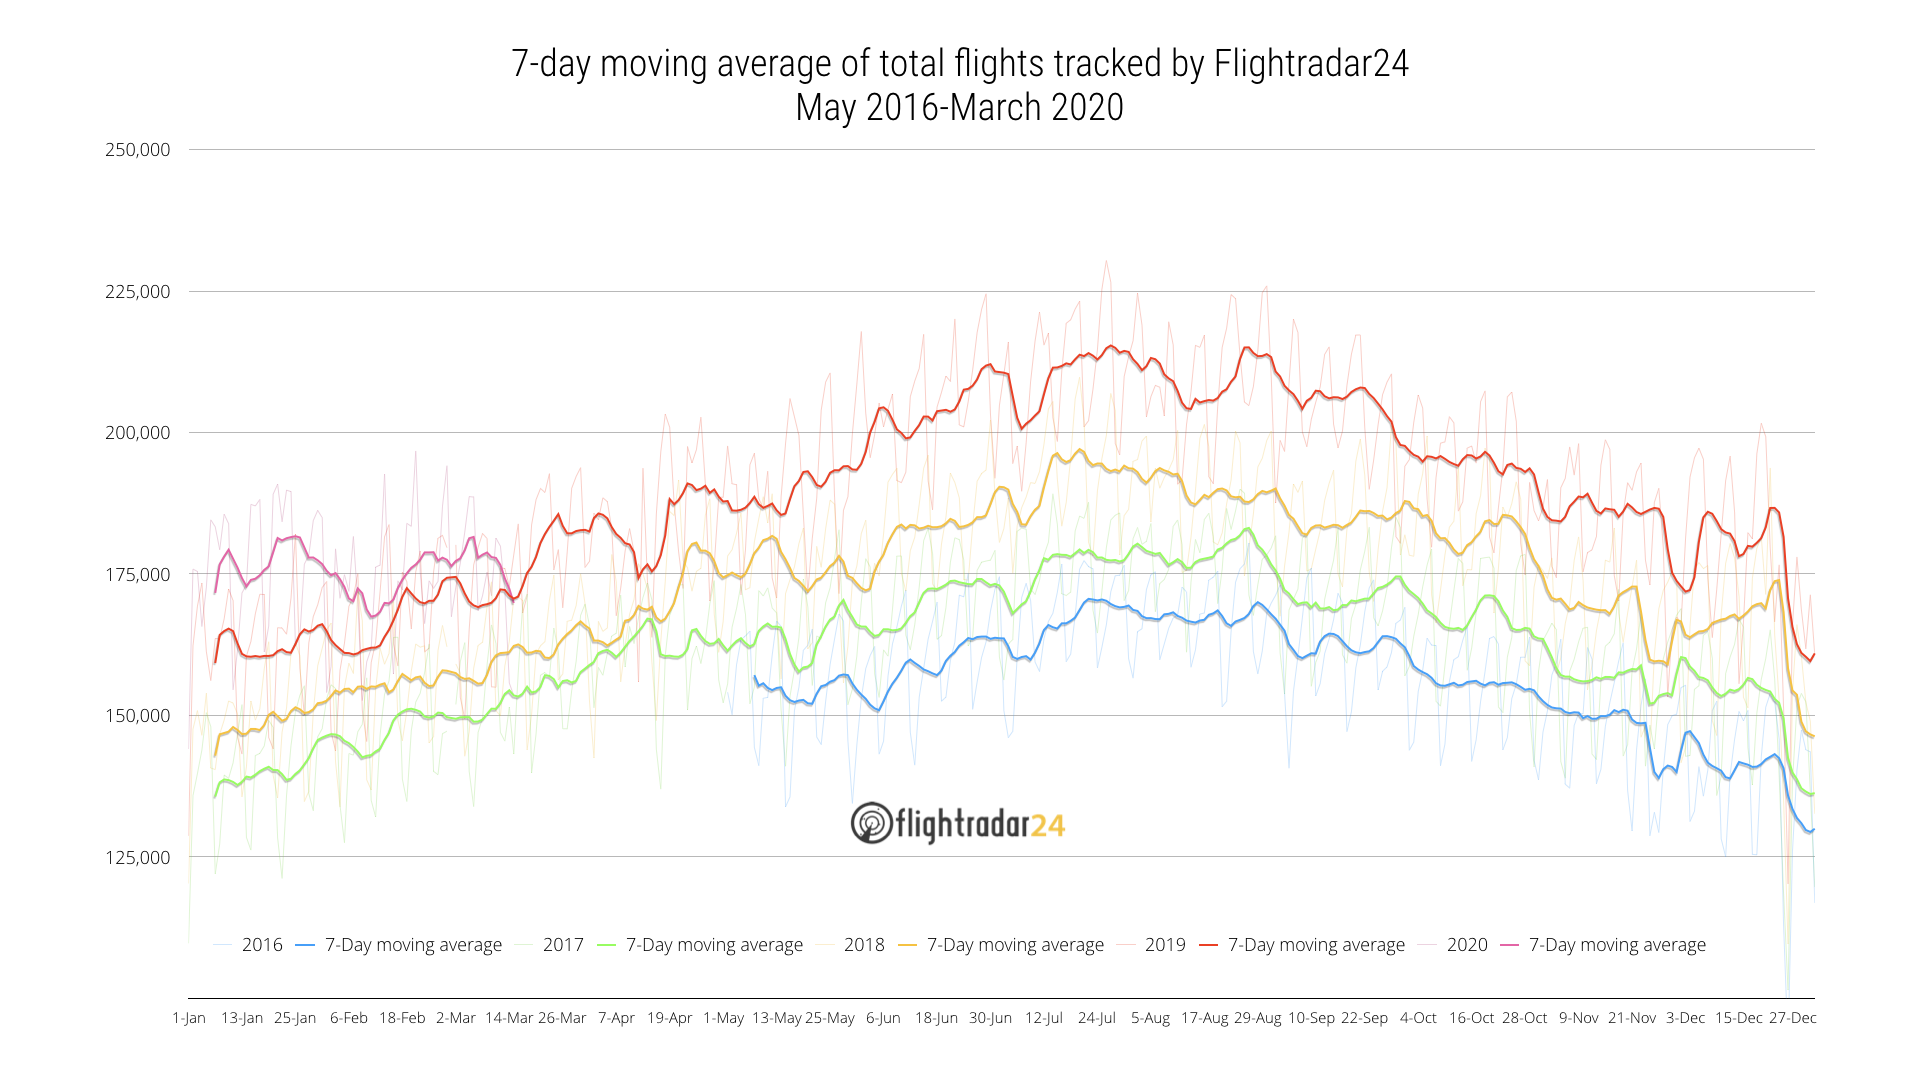 7 Day moving average of all flights tracked by Flightradar24 through 15 March 2020